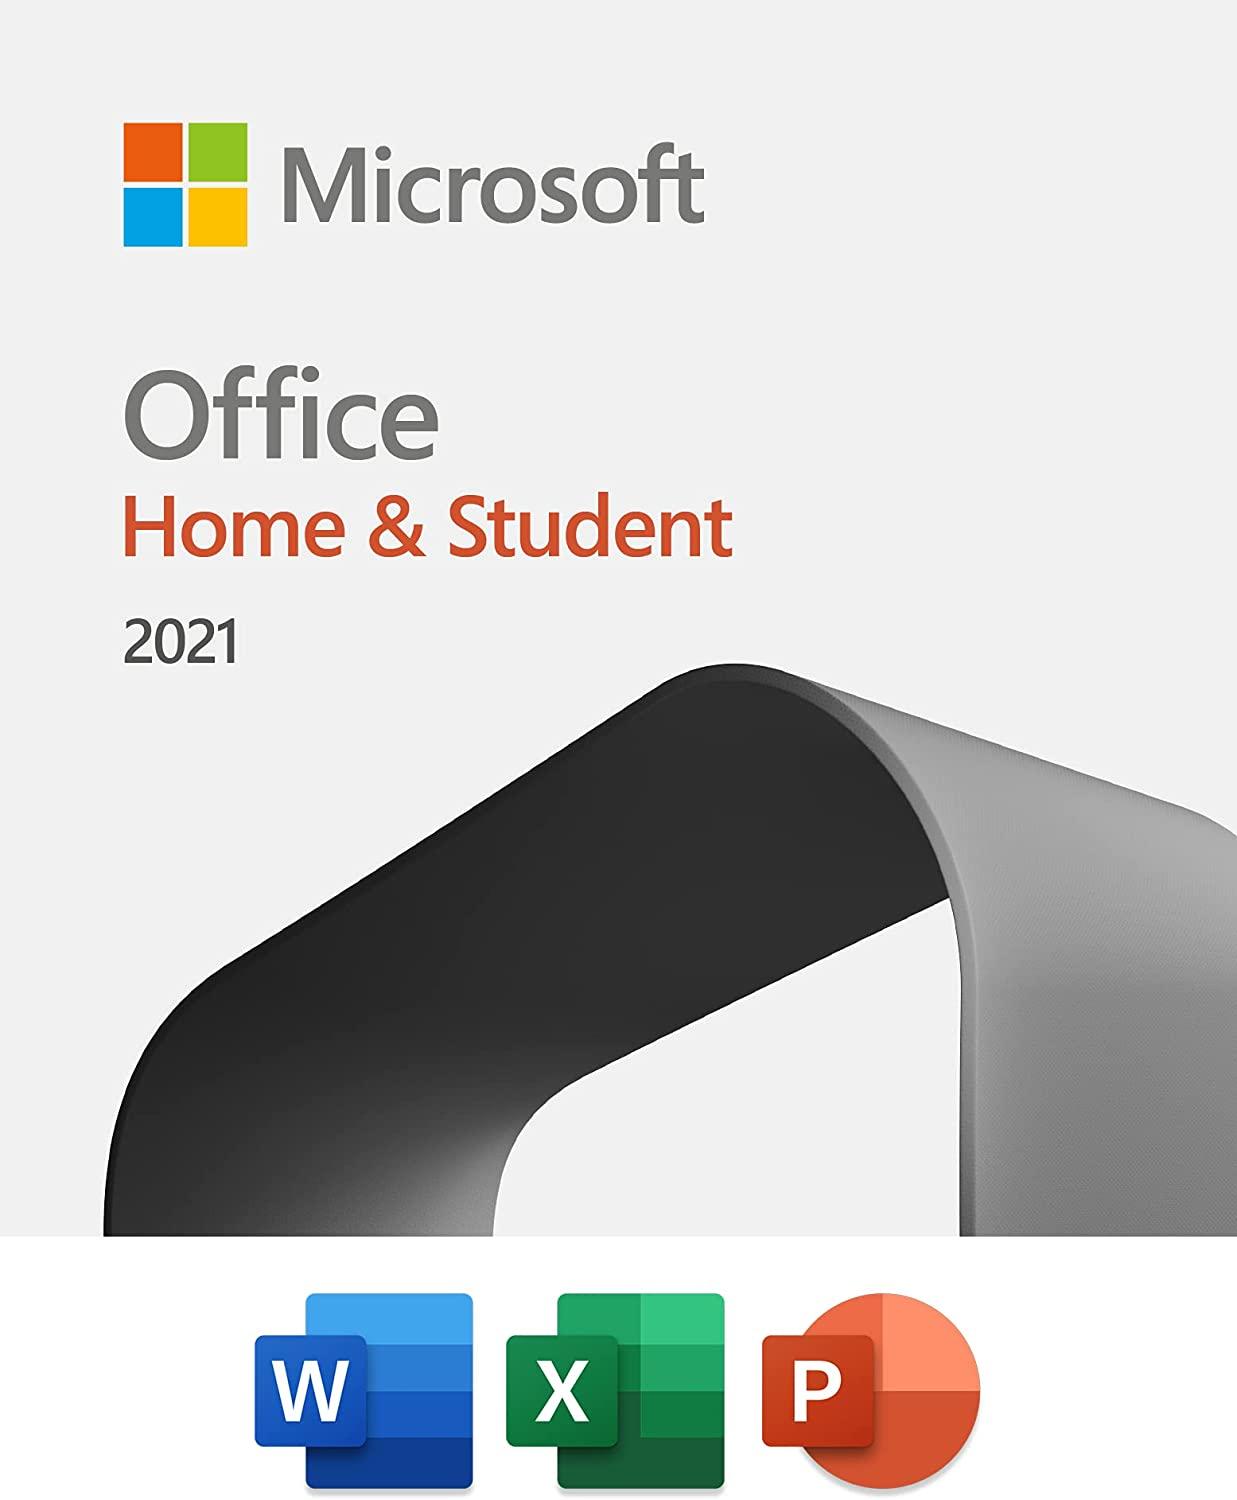 Microsoft Office Home & Student 2021 | One-time purchase for 1 PC or Mac| Download